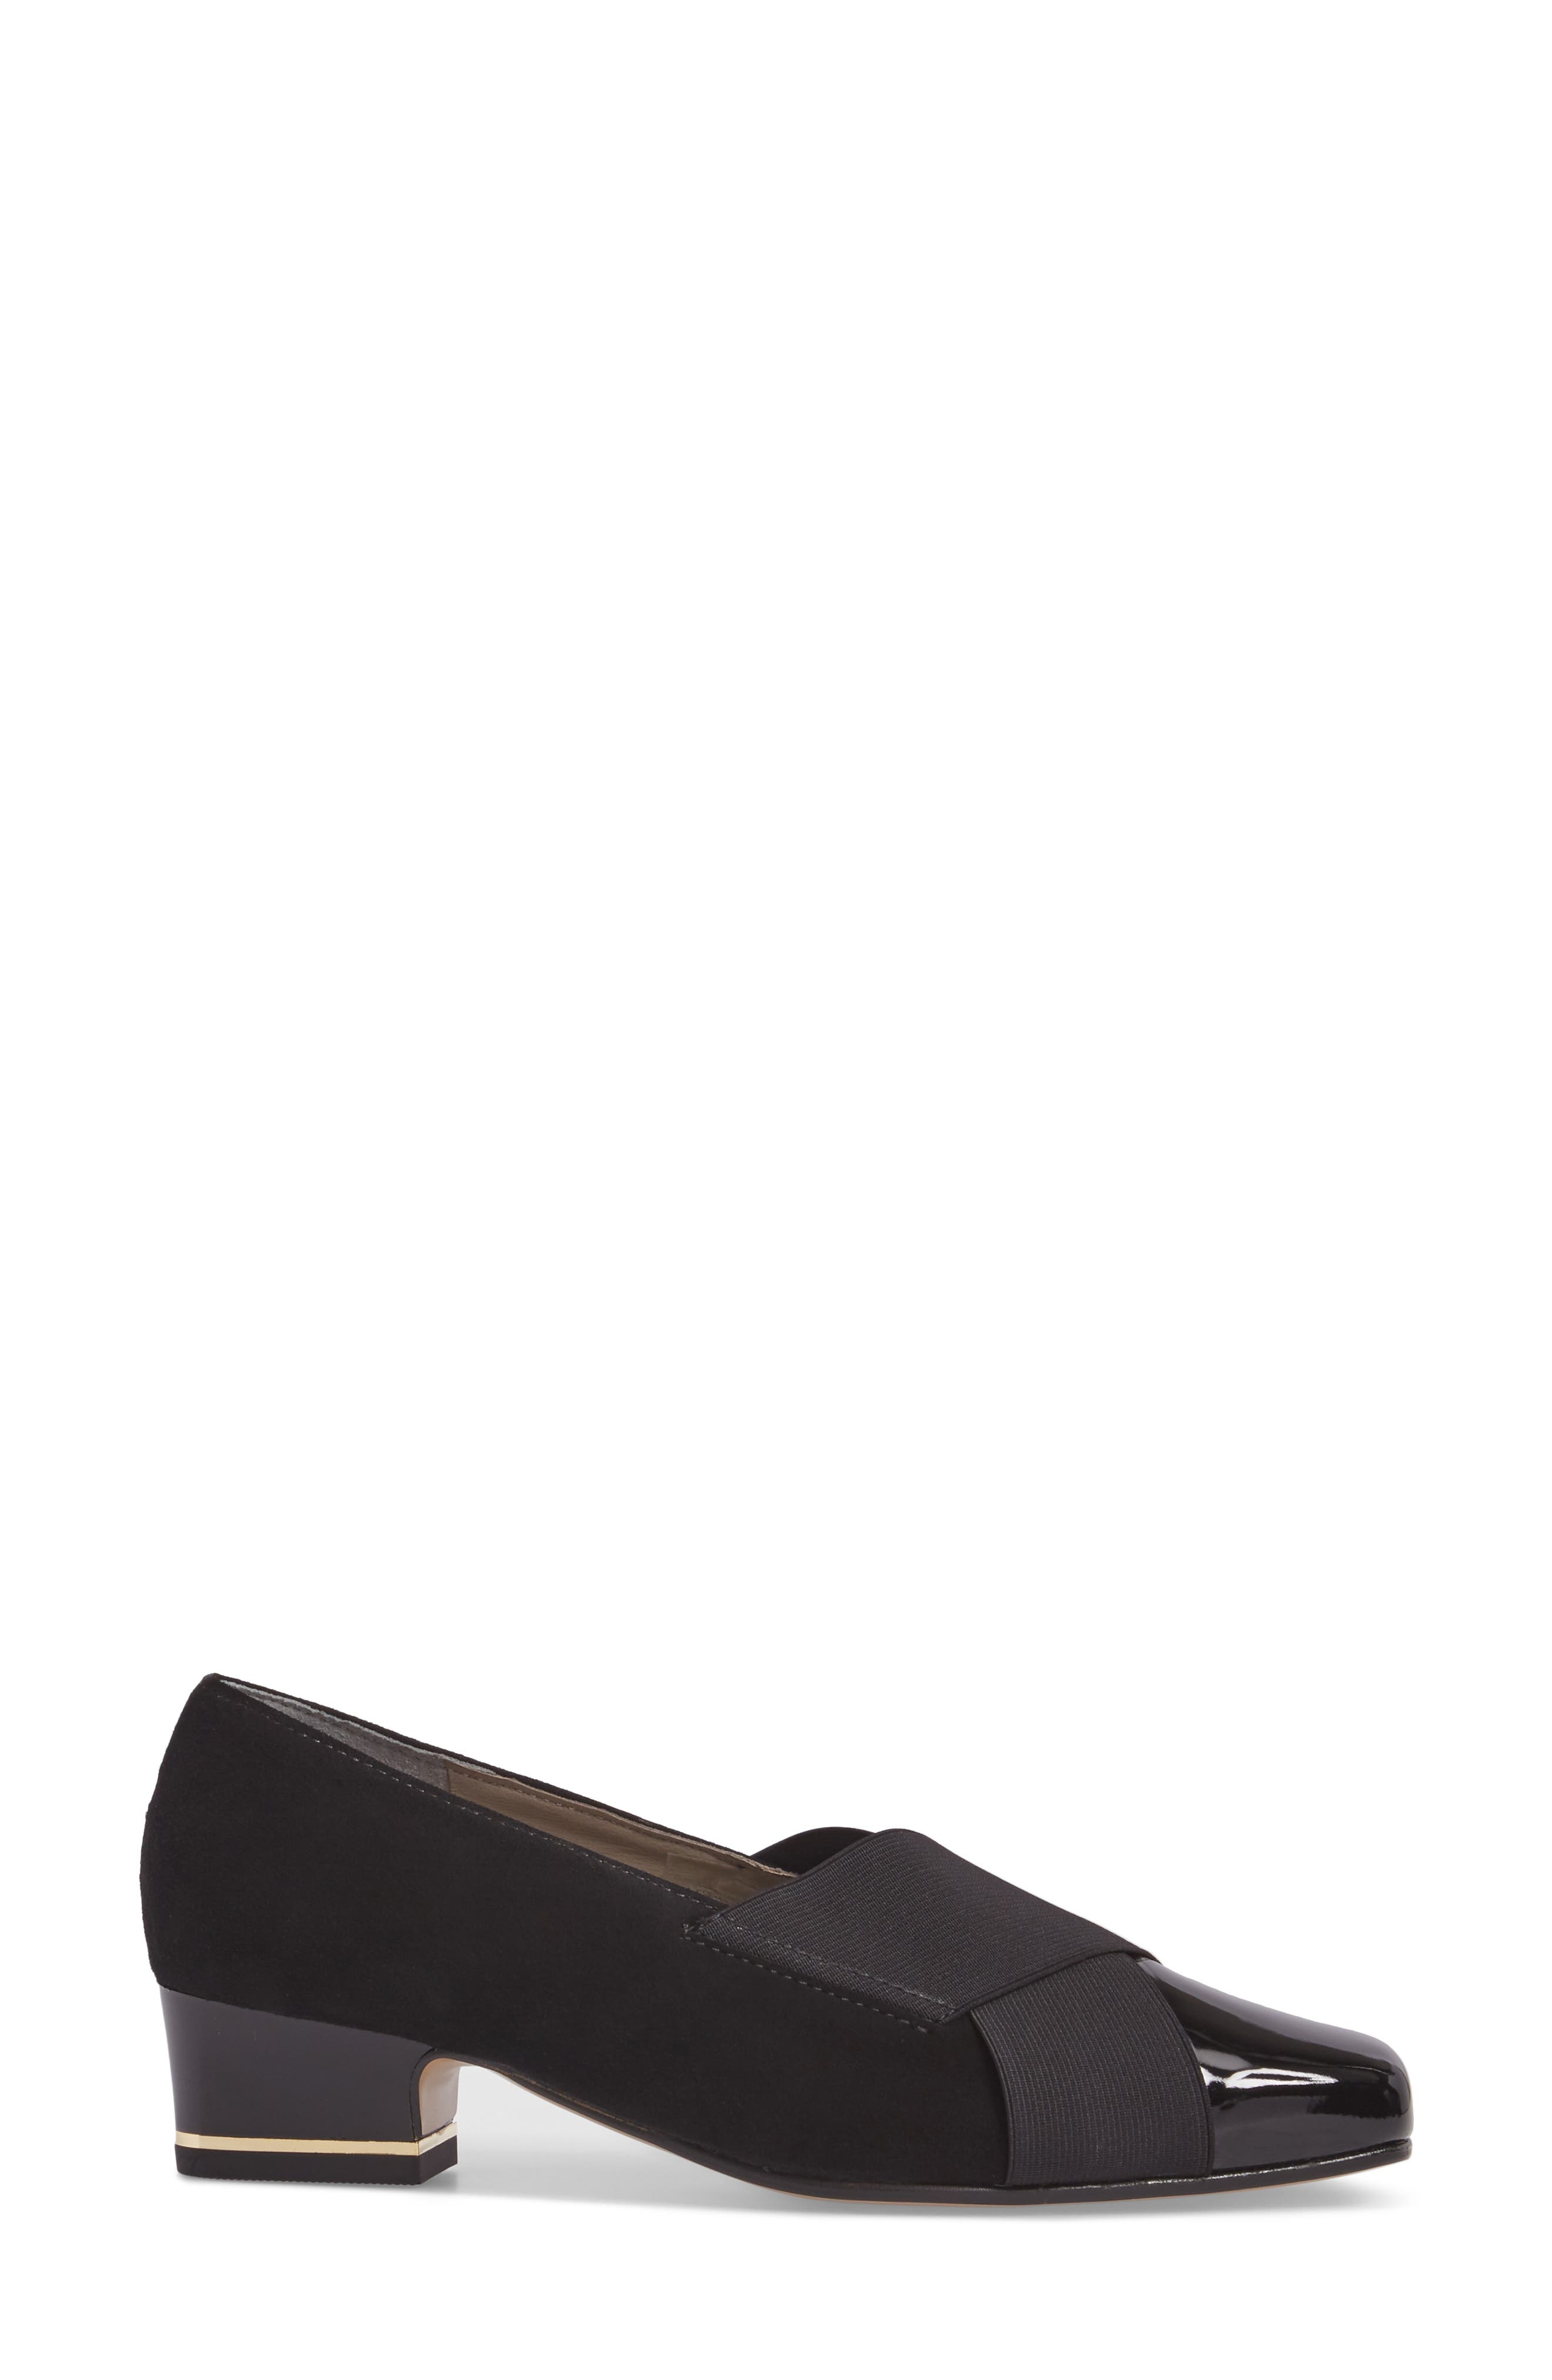 Gina Loafer Pump,                             Alternate thumbnail 3, color,                             BLACK LEATHER